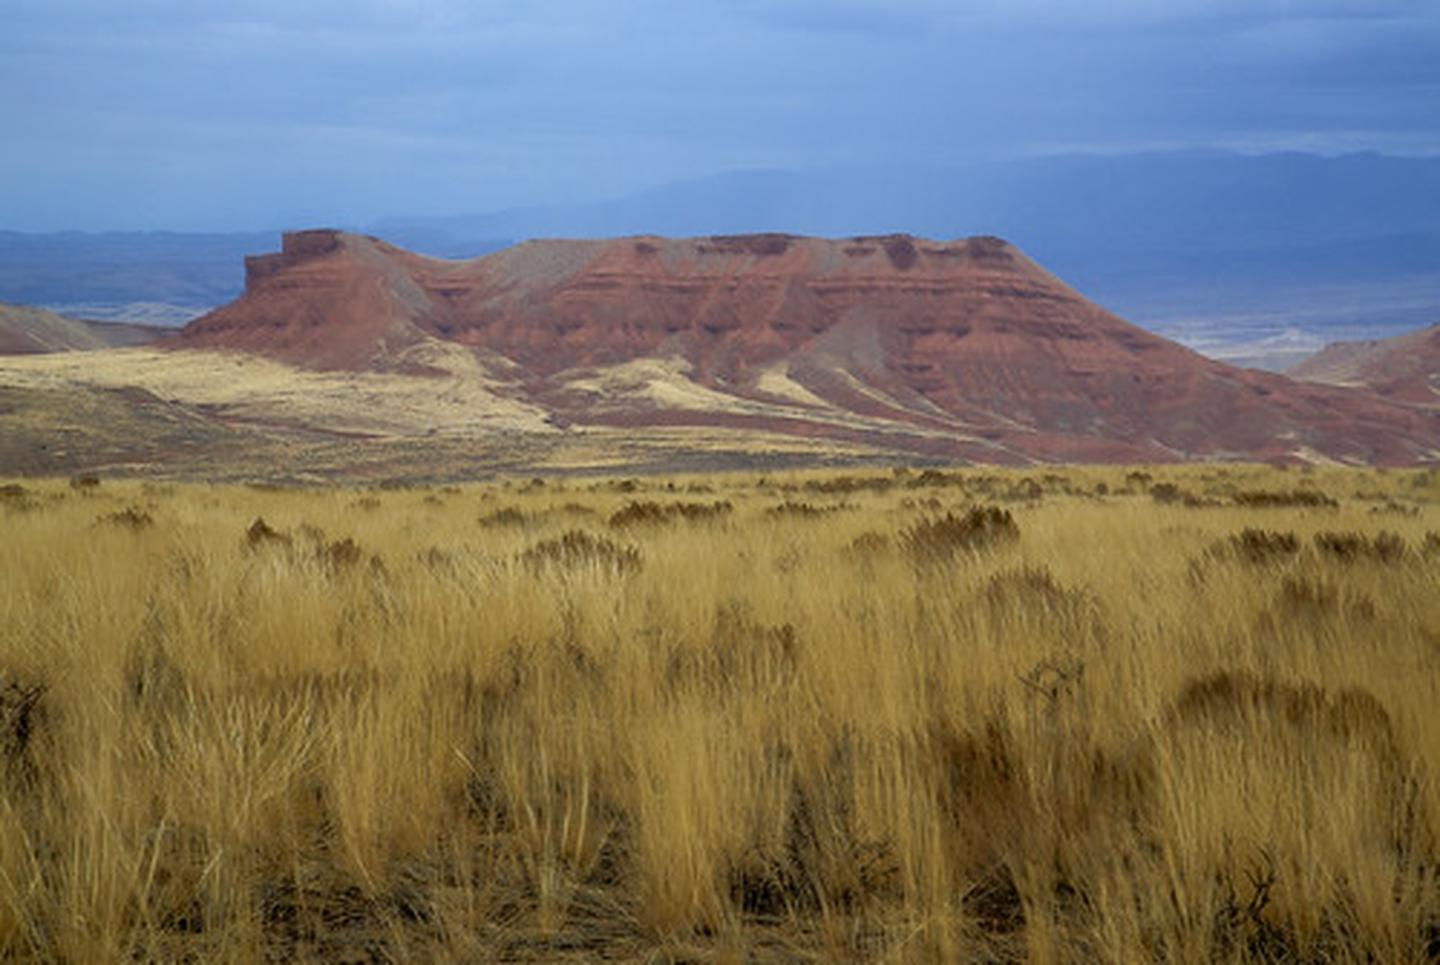 A butte with gold colored grass in the foreground and a stromy sky in the background